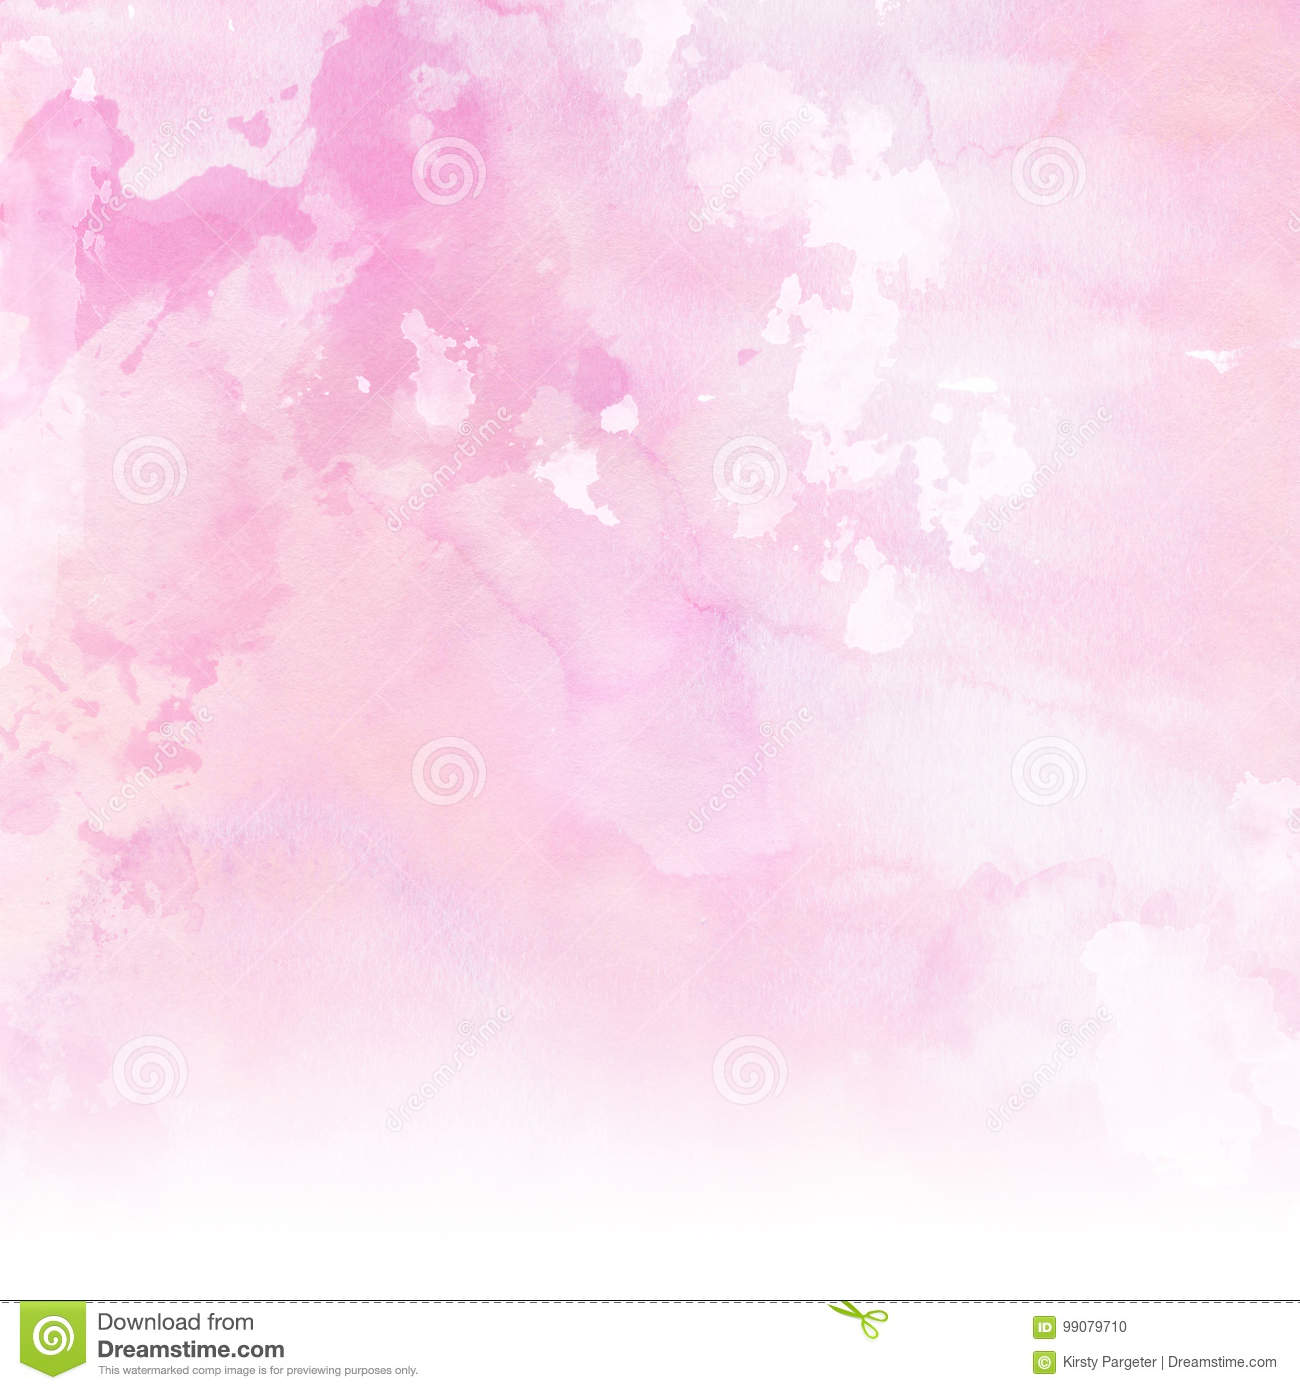 Pastel Pink Watercolour Background Texture Gambar Vektor Princess